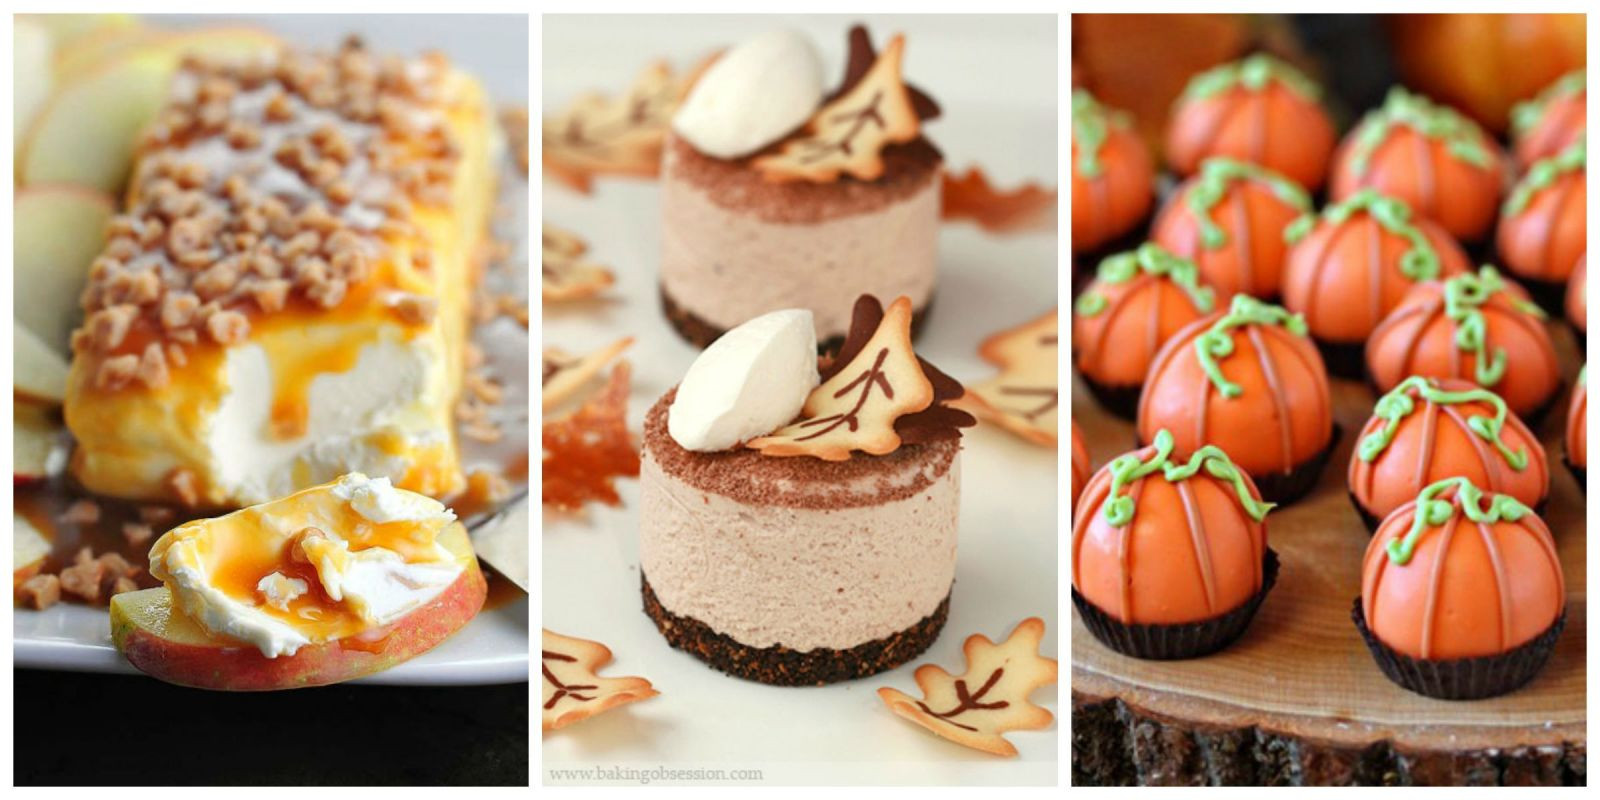 Best Party Desserts  35 Easy Fall Dessert Recipes Best Treats for Autumn Parties